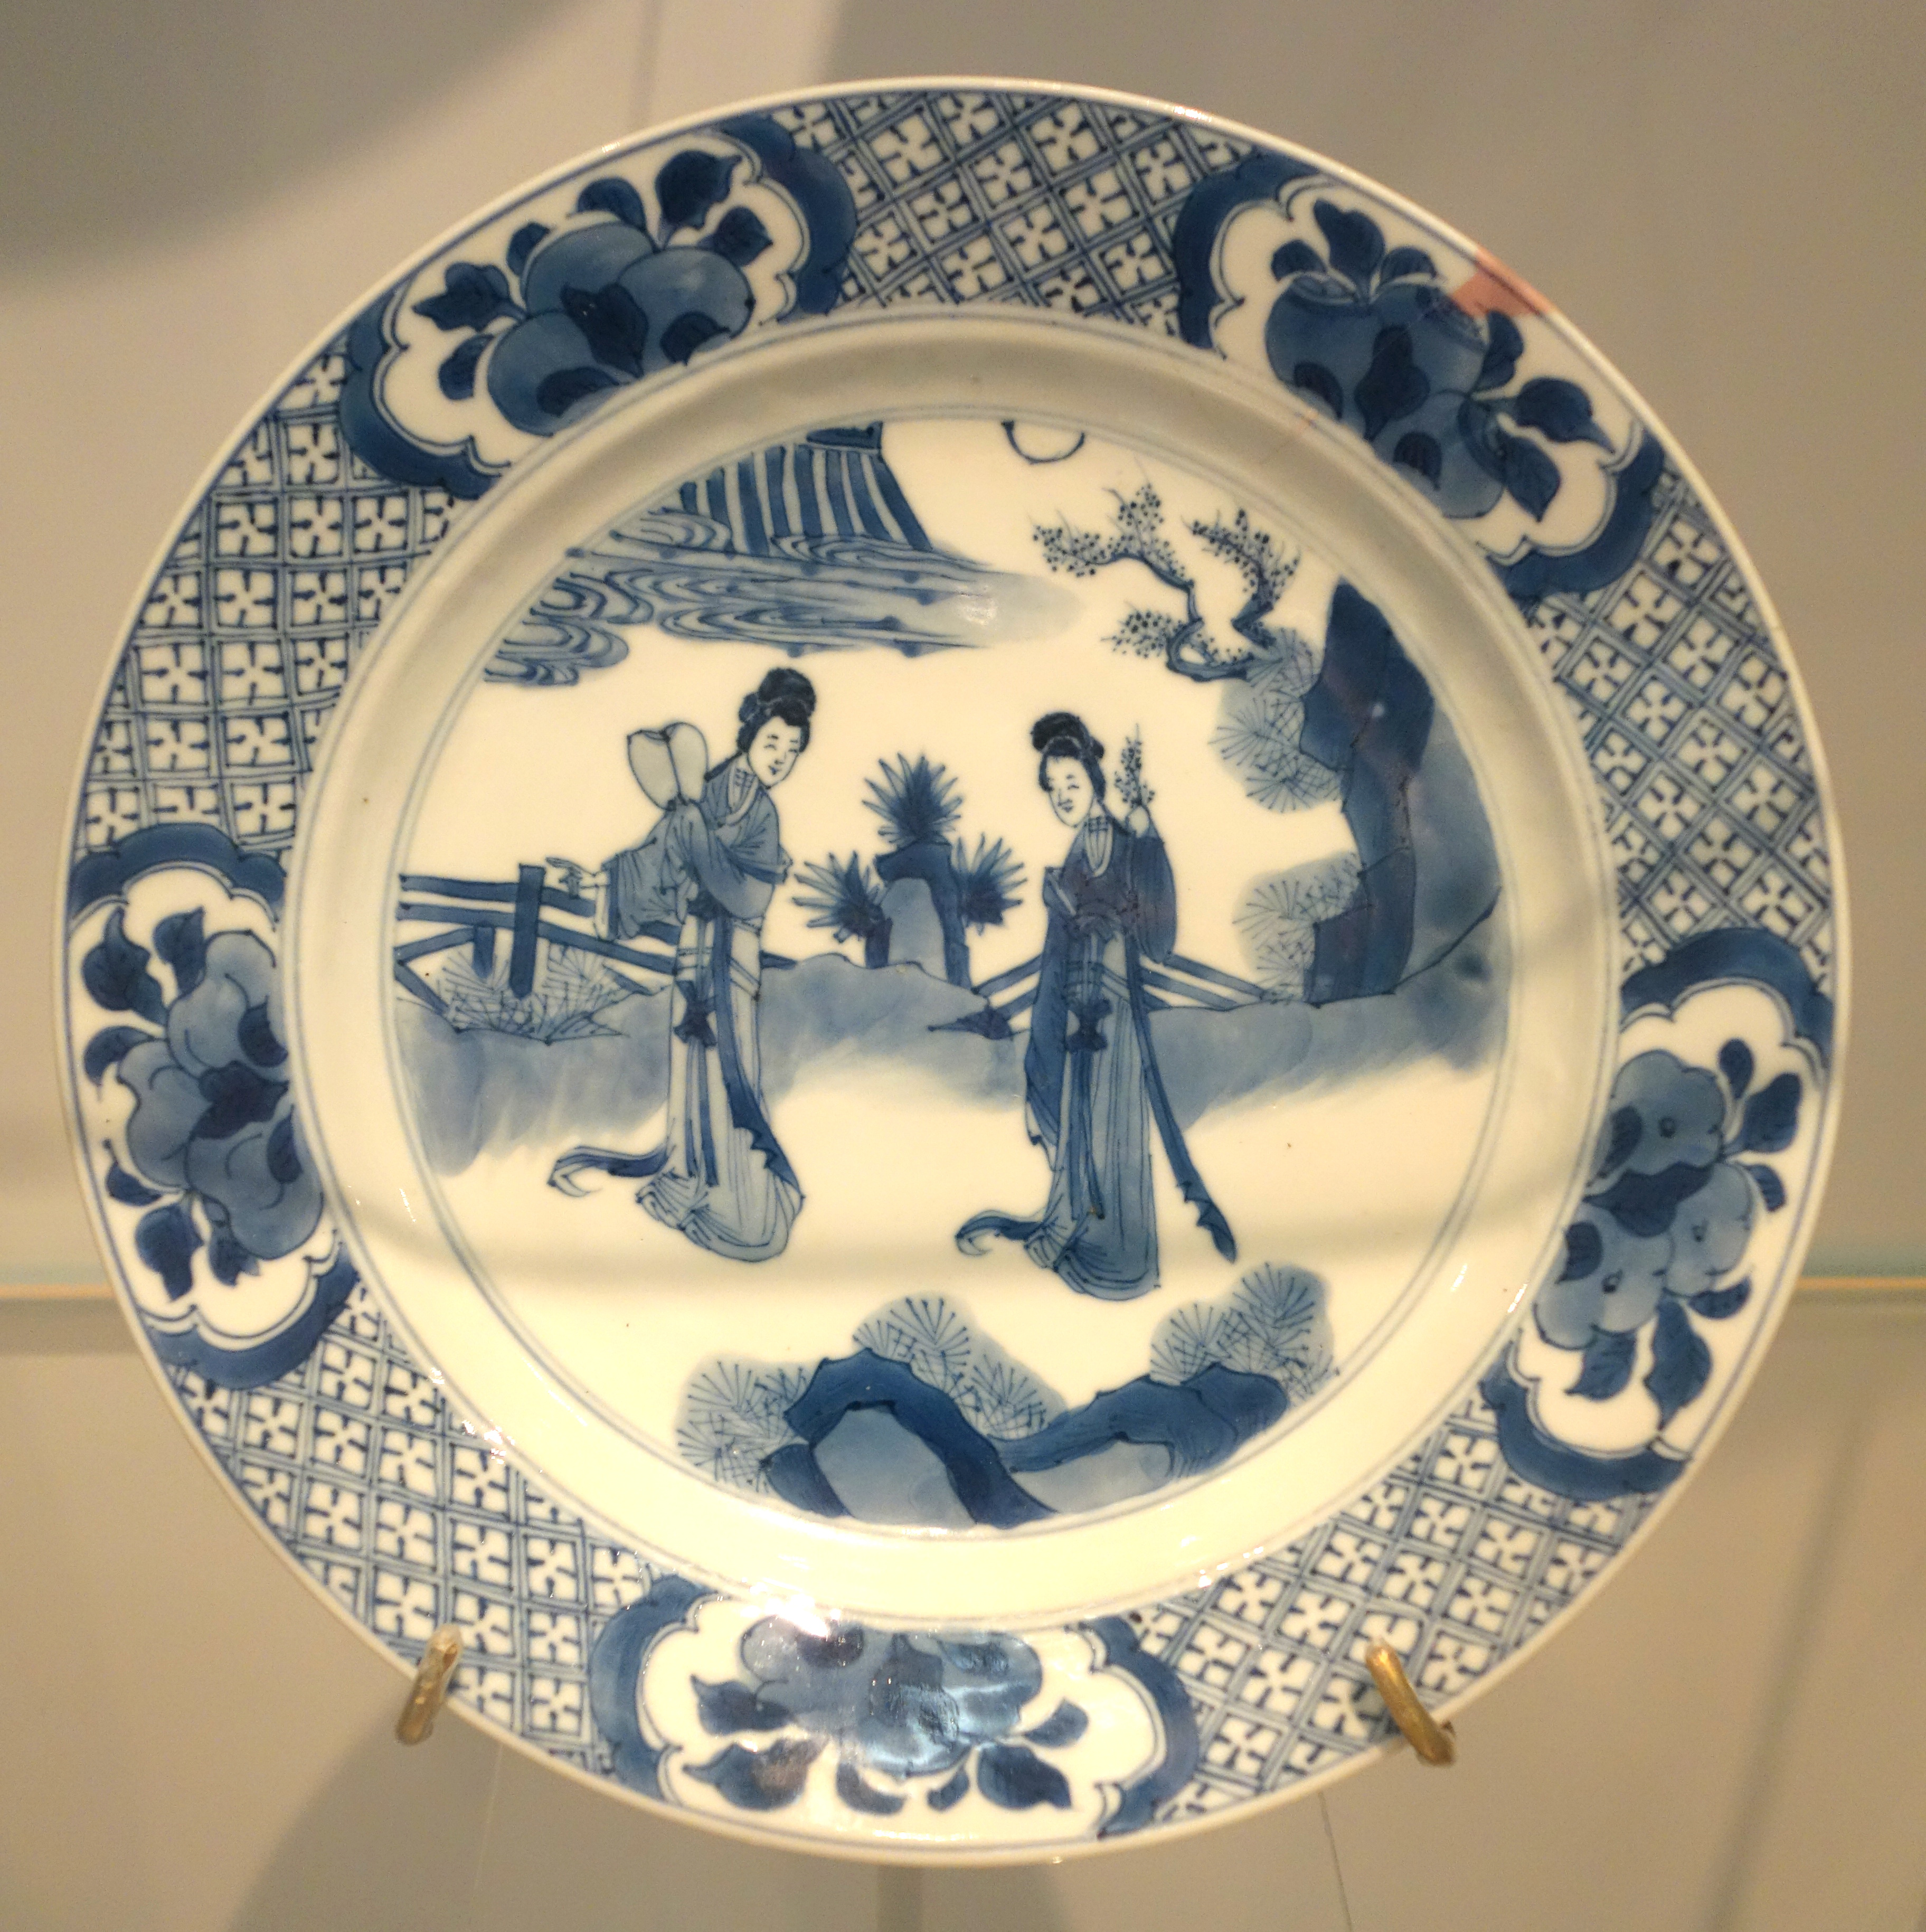 FileJingdezhen plate of European form China Qing dynasty c. 1680 & File:Jingdezhen plate of European form China Qing dynasty c. 1680 ...